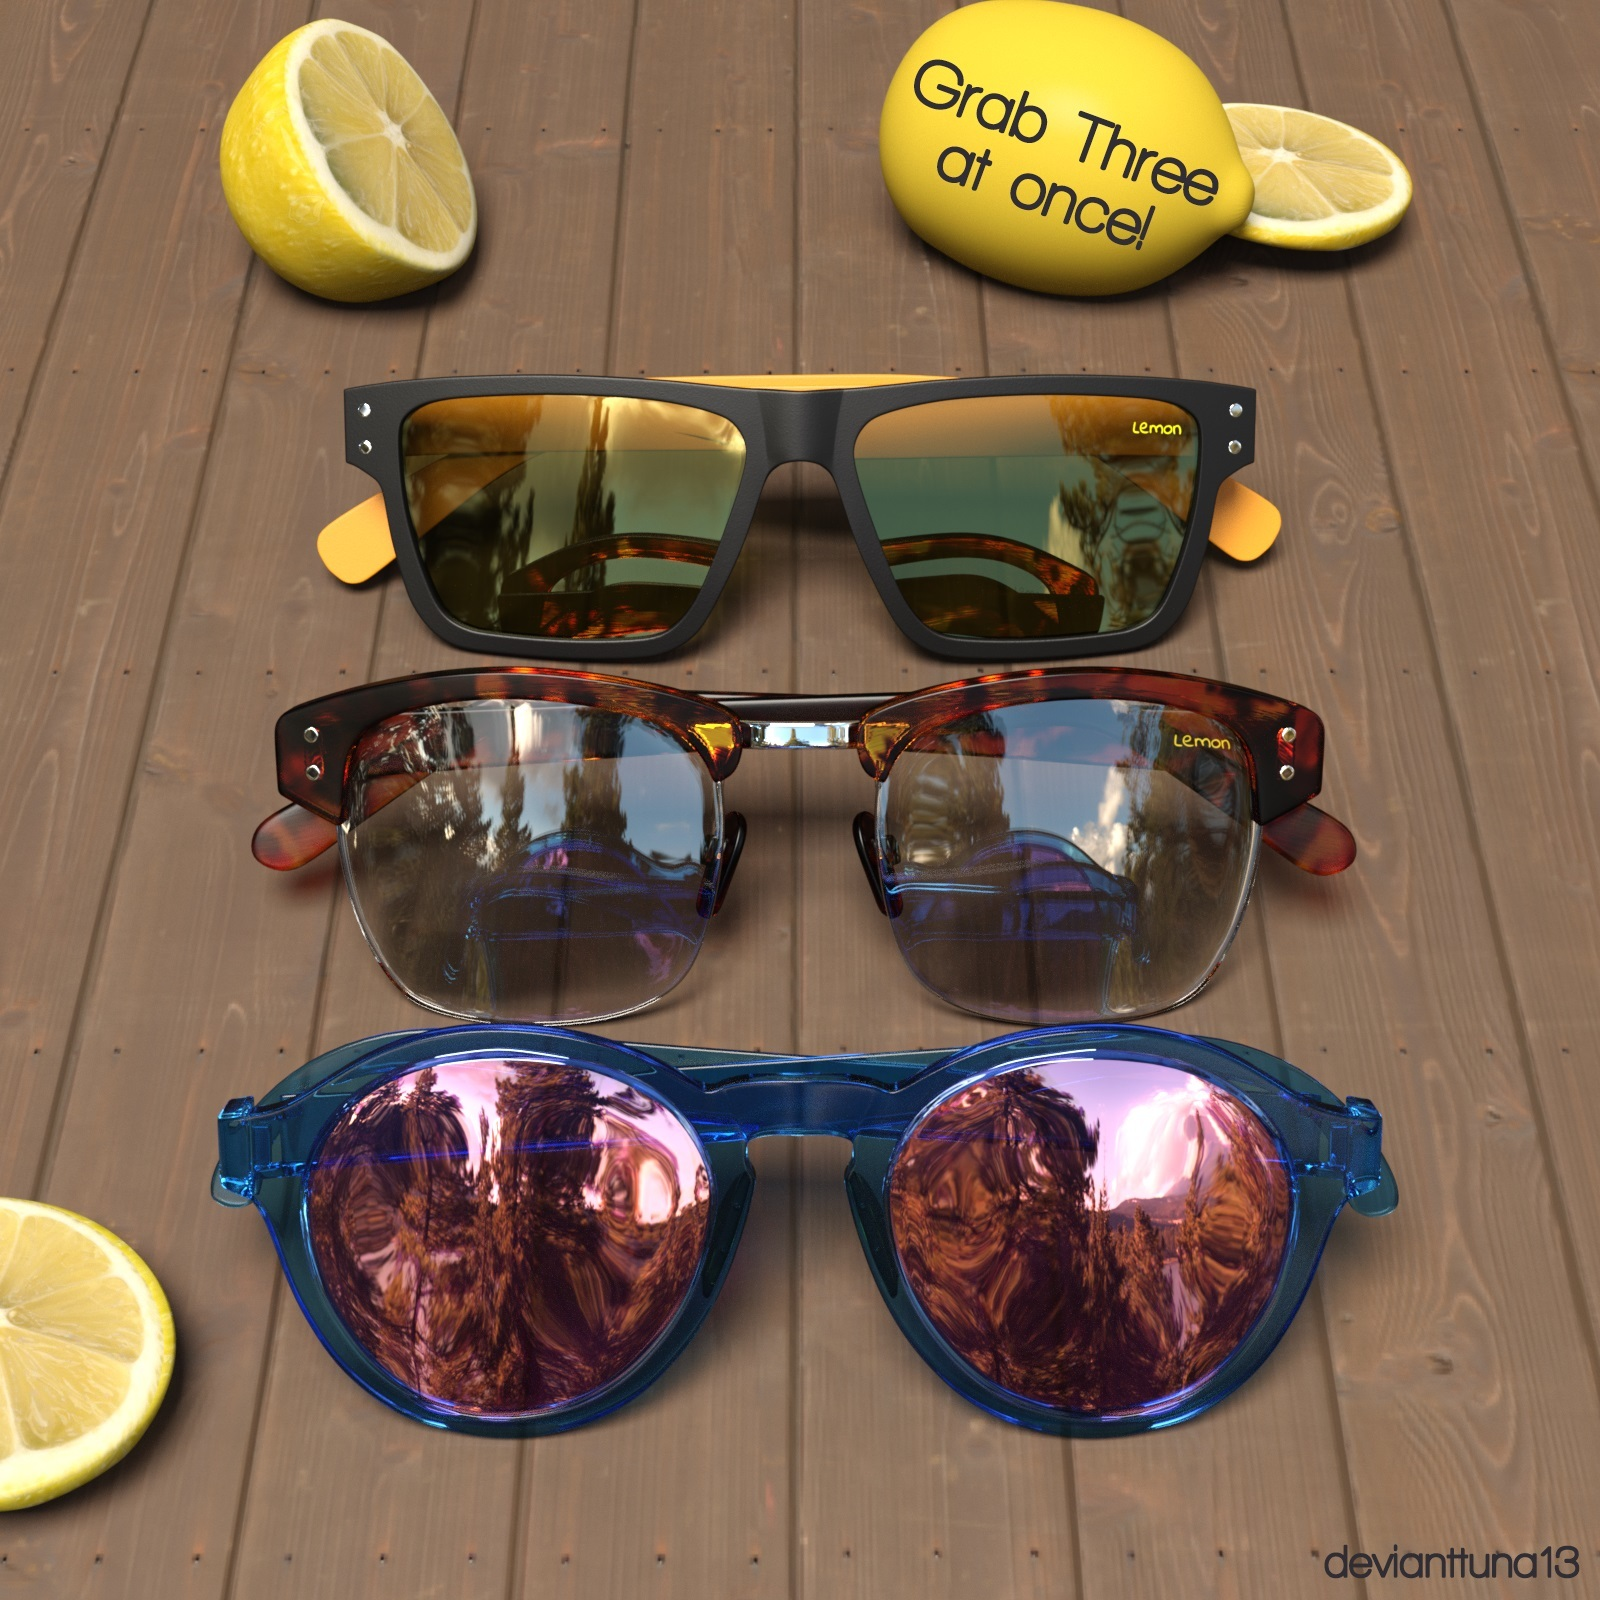 Lemon Glasses - 3 in 1